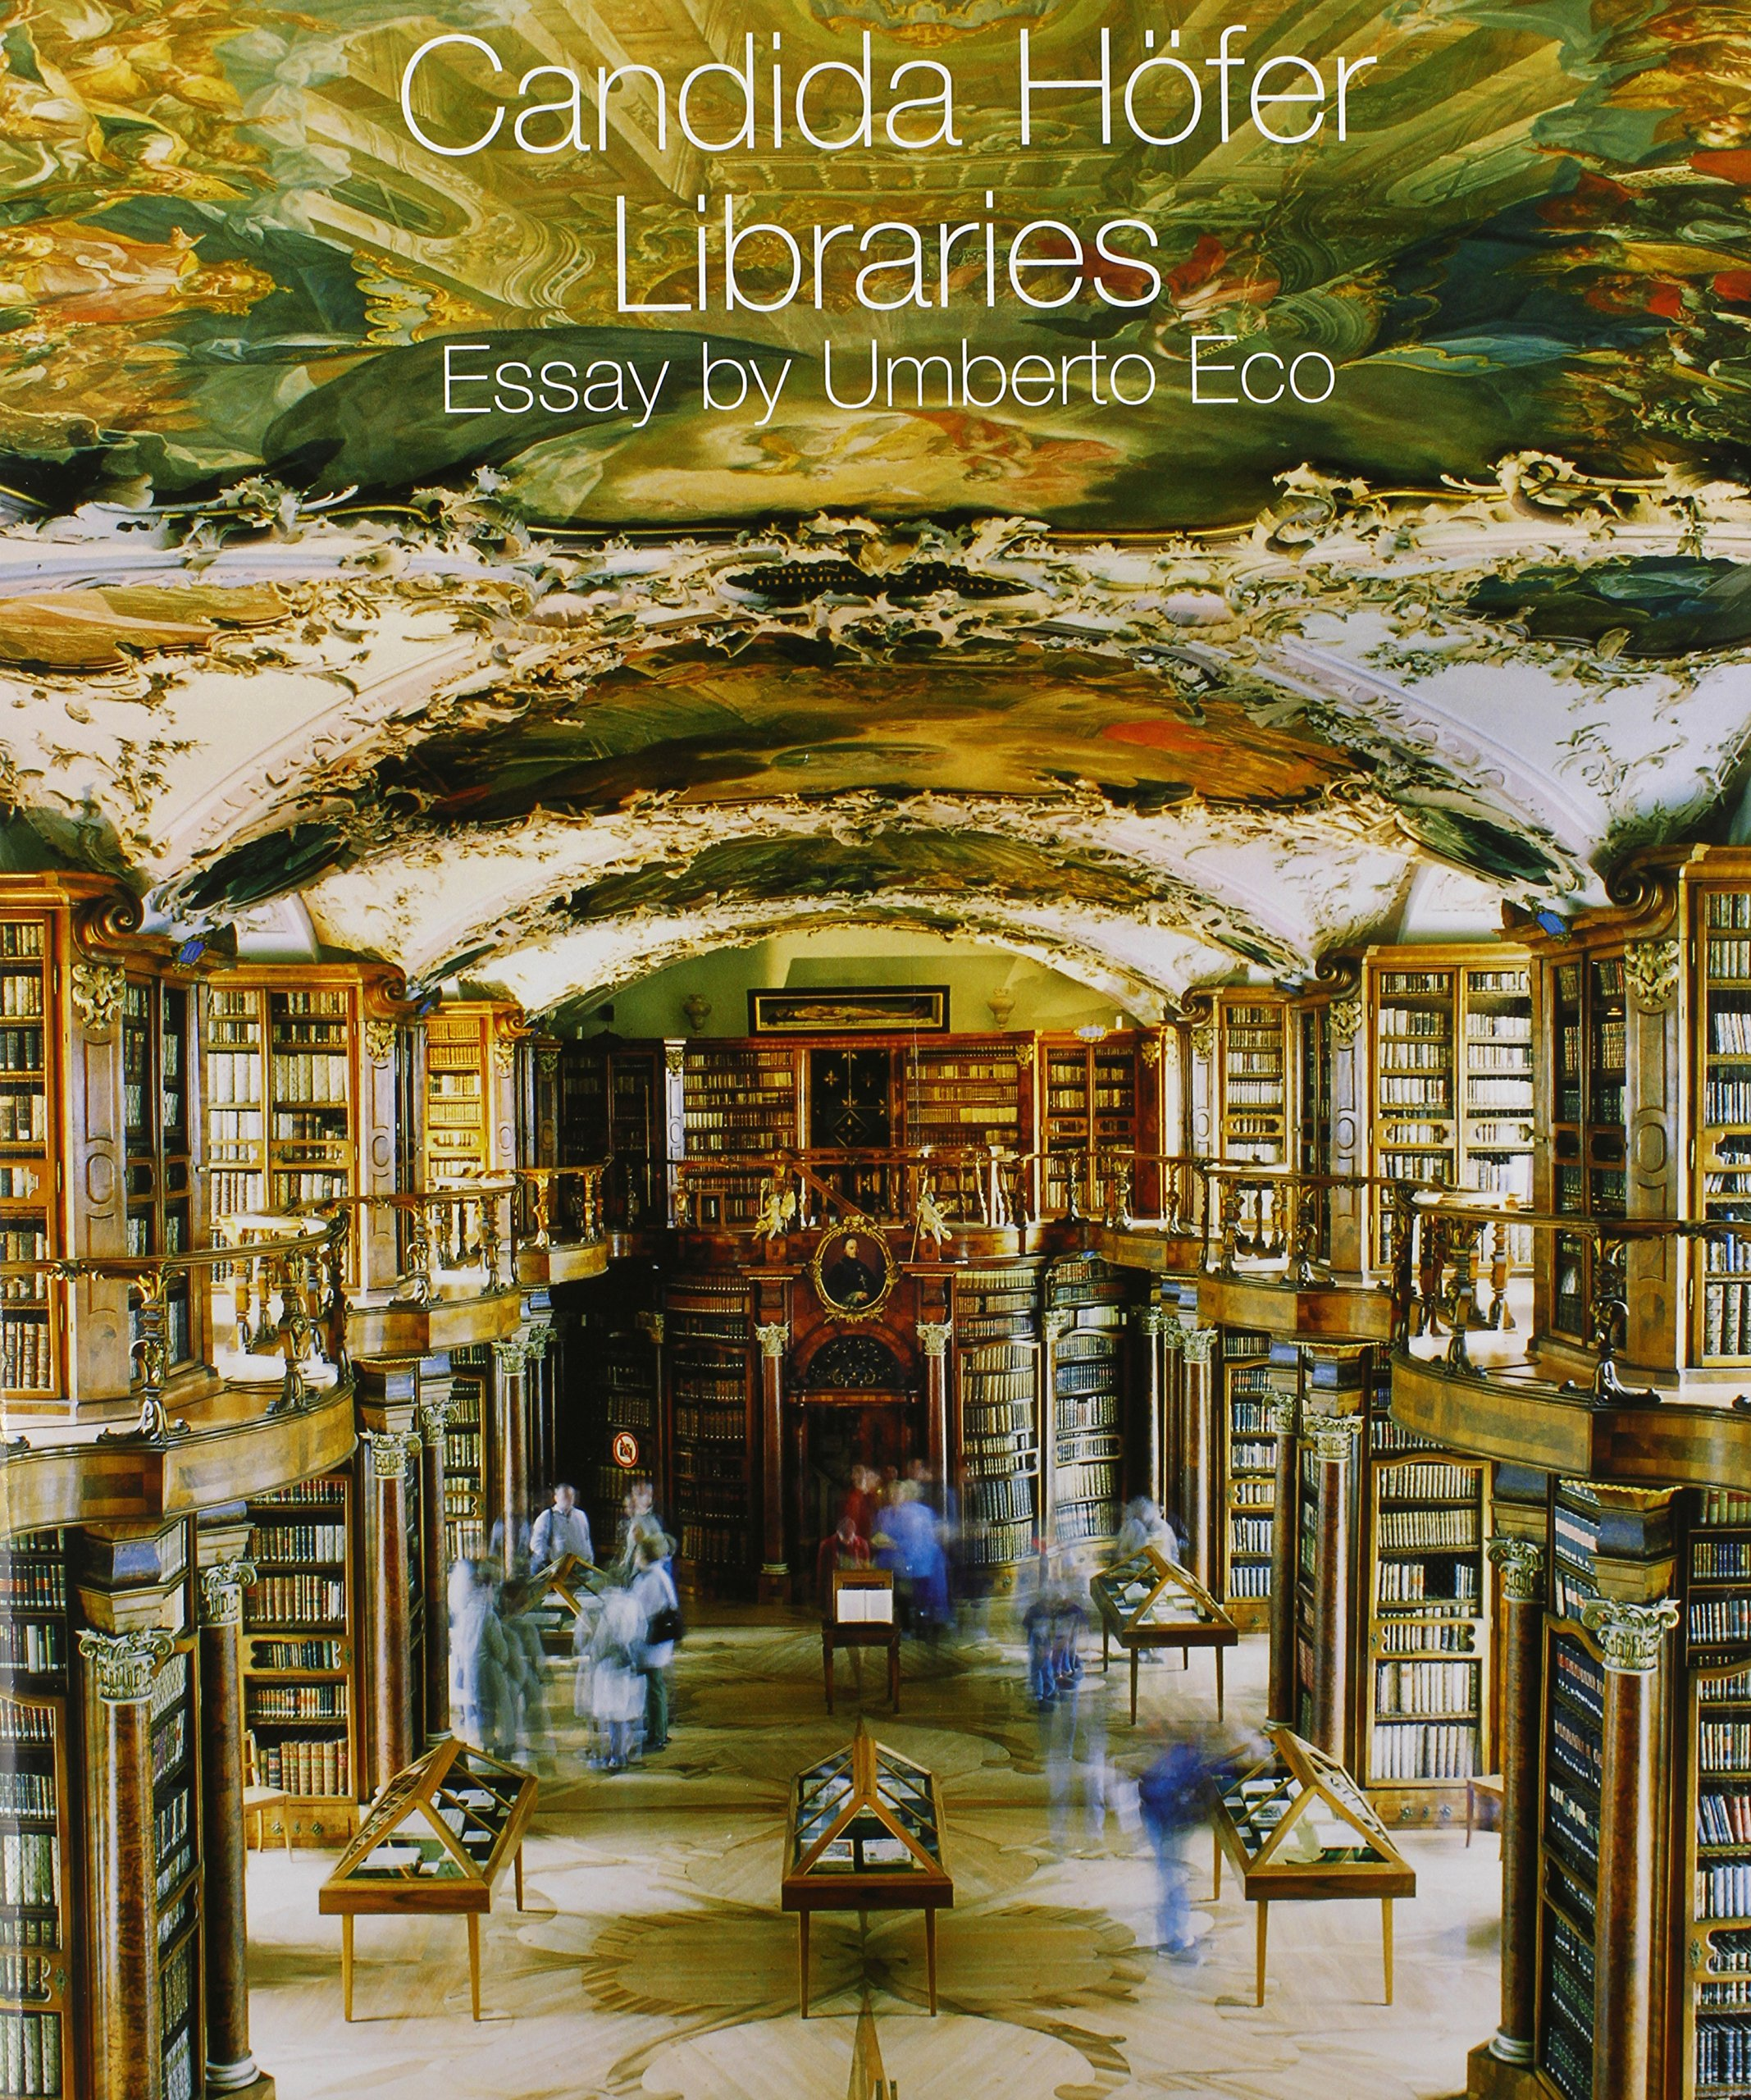 com libraries 9783829601863 candida h ouml fer umberto eco  com libraries 9783829601863 candida houmlfer umberto eco books